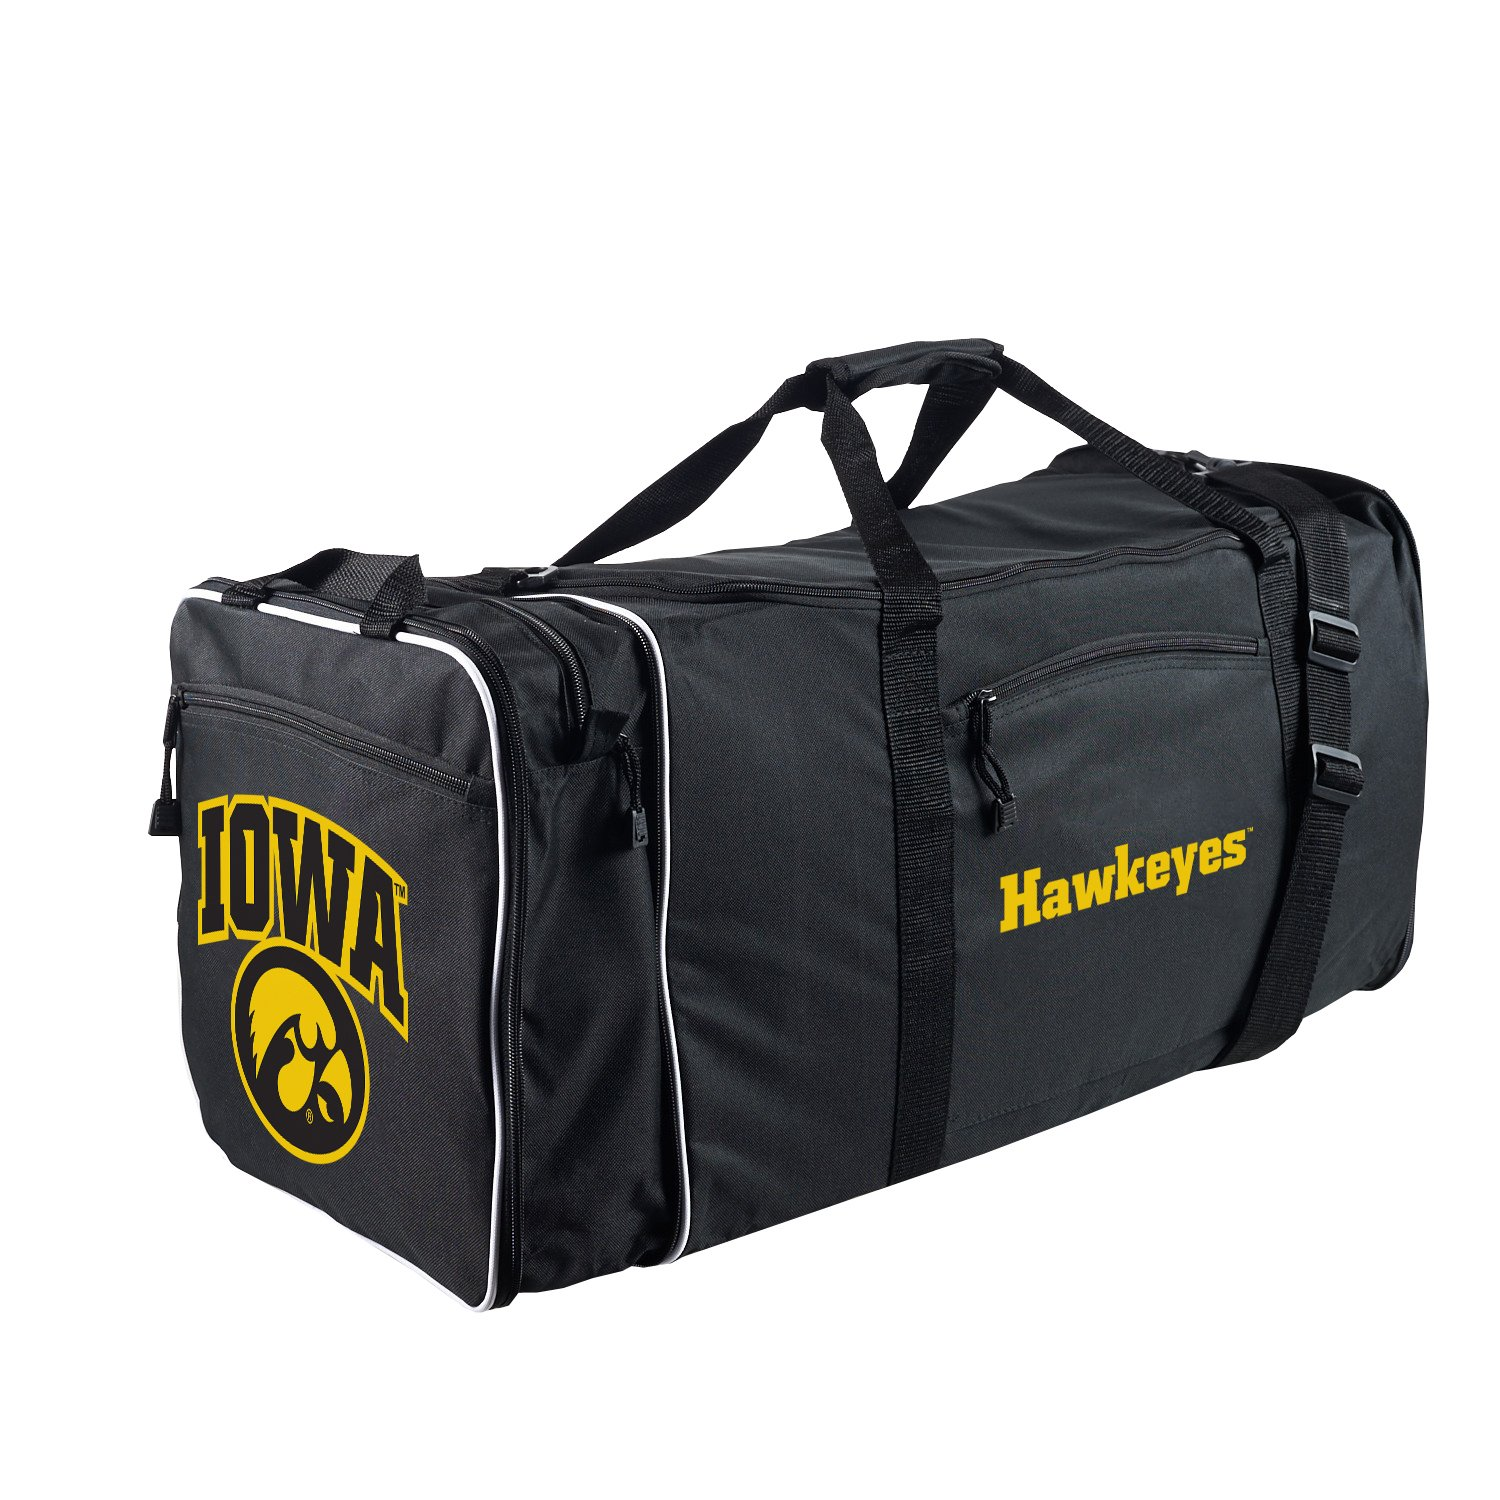 Officially Licensed NCAA Iowa Hawkeyes Steal Duffel Bag by The Northwest Company (Image #2)